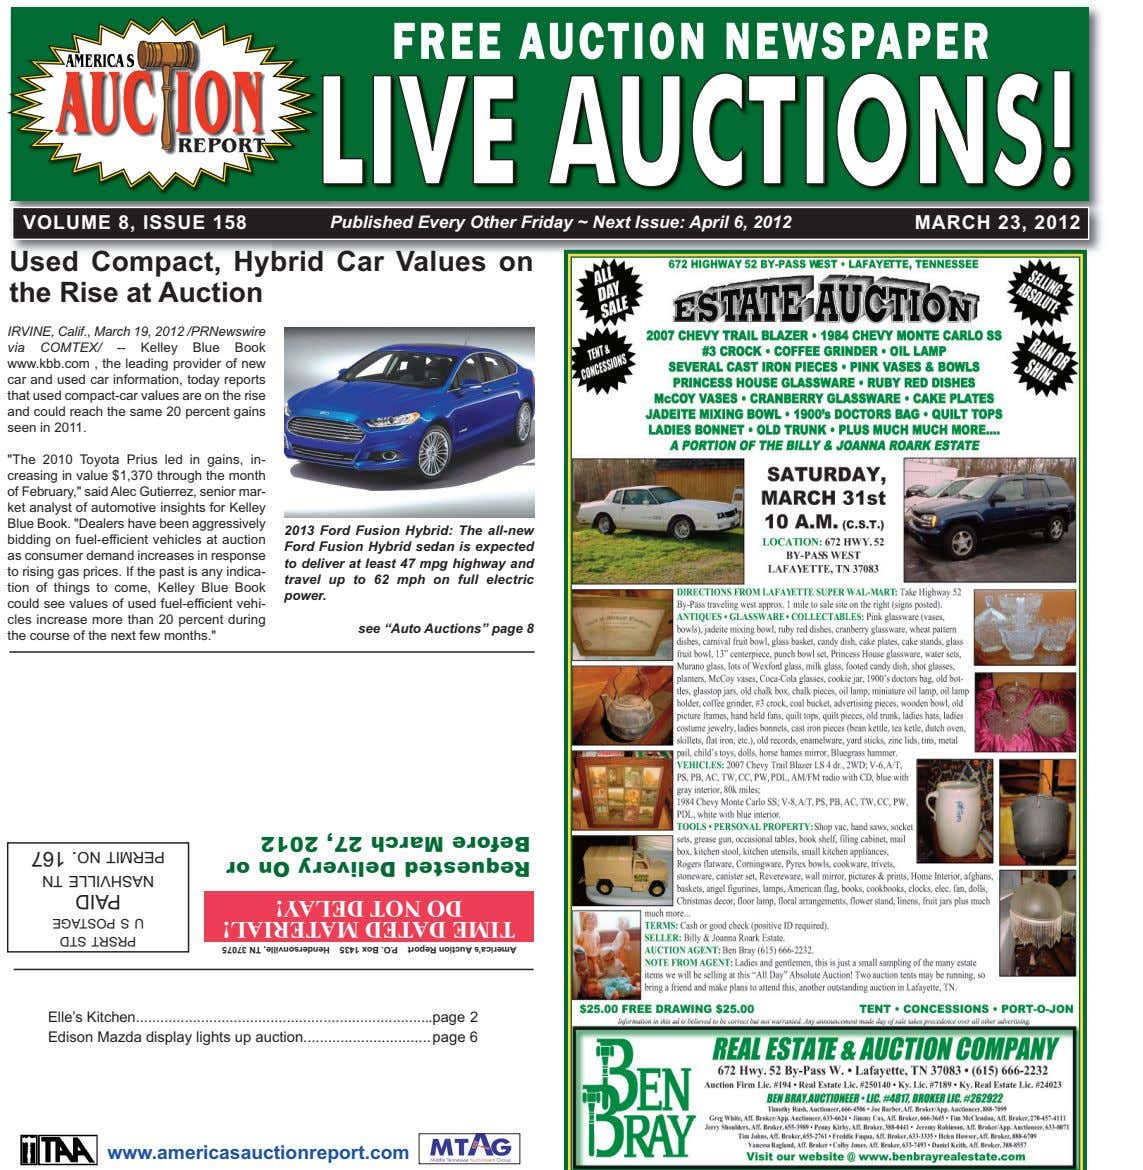 FREE AUCTION NEWSPAPER LLIIVVEEAAUUCCTTIIOONNSS!! VOLUME 8, ISSUE 158 Published Every Other Friday ~ Next Issue: